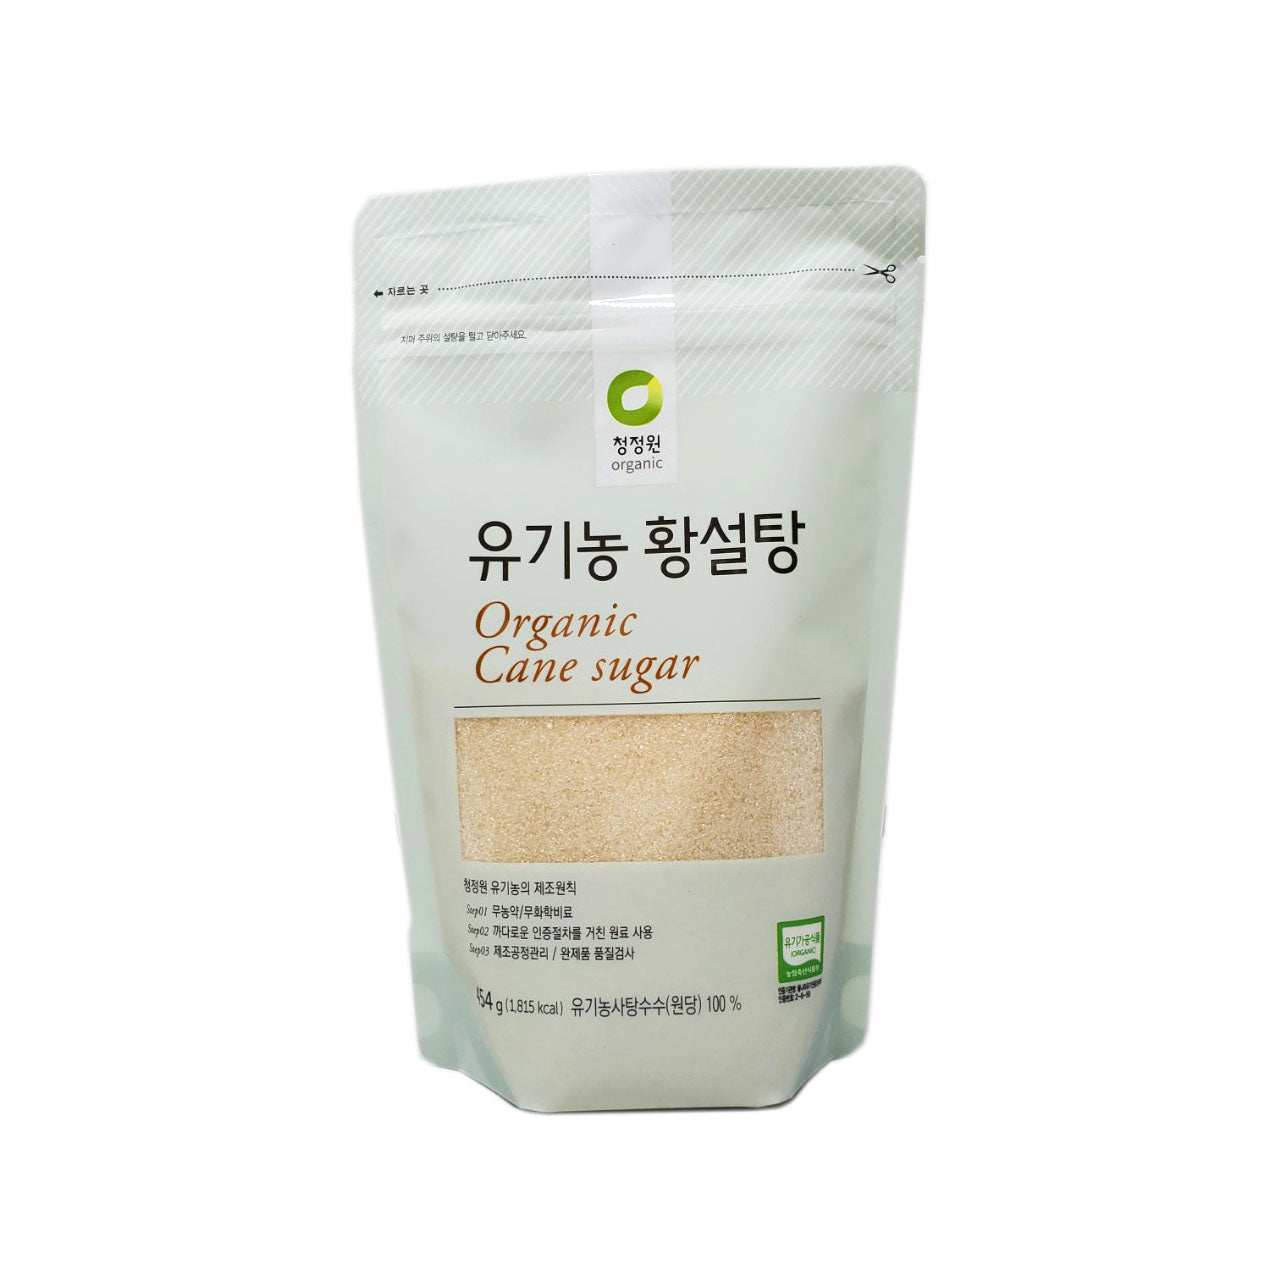 청정원 유기농 황설탕 (Chungjungone Organic Cane Sugar Brown) 454g